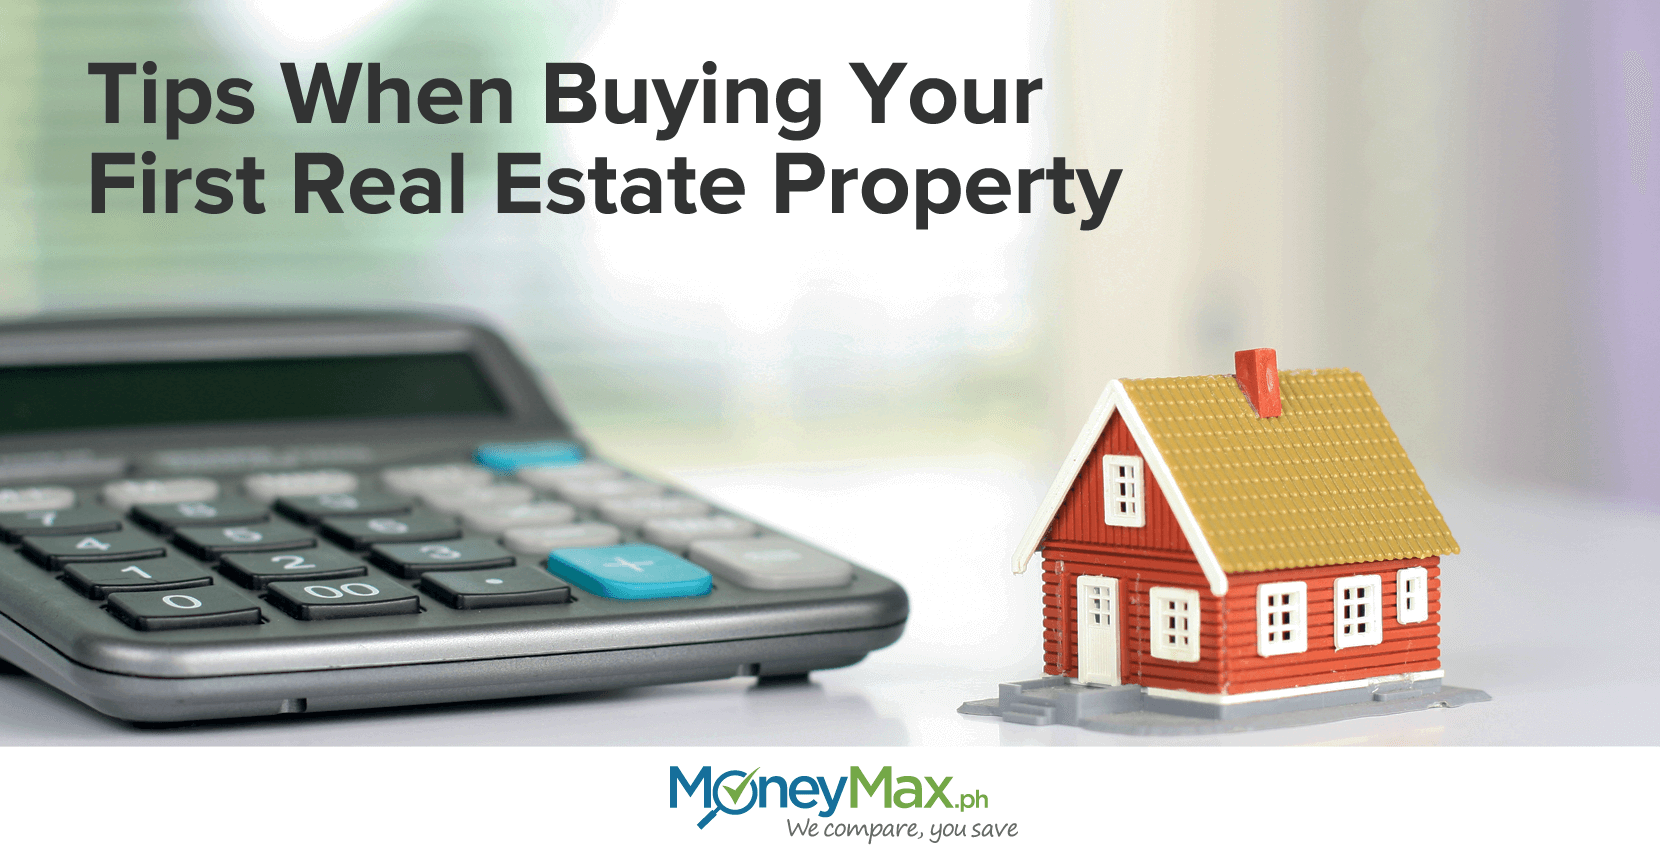 Tips when buying your first real estate property